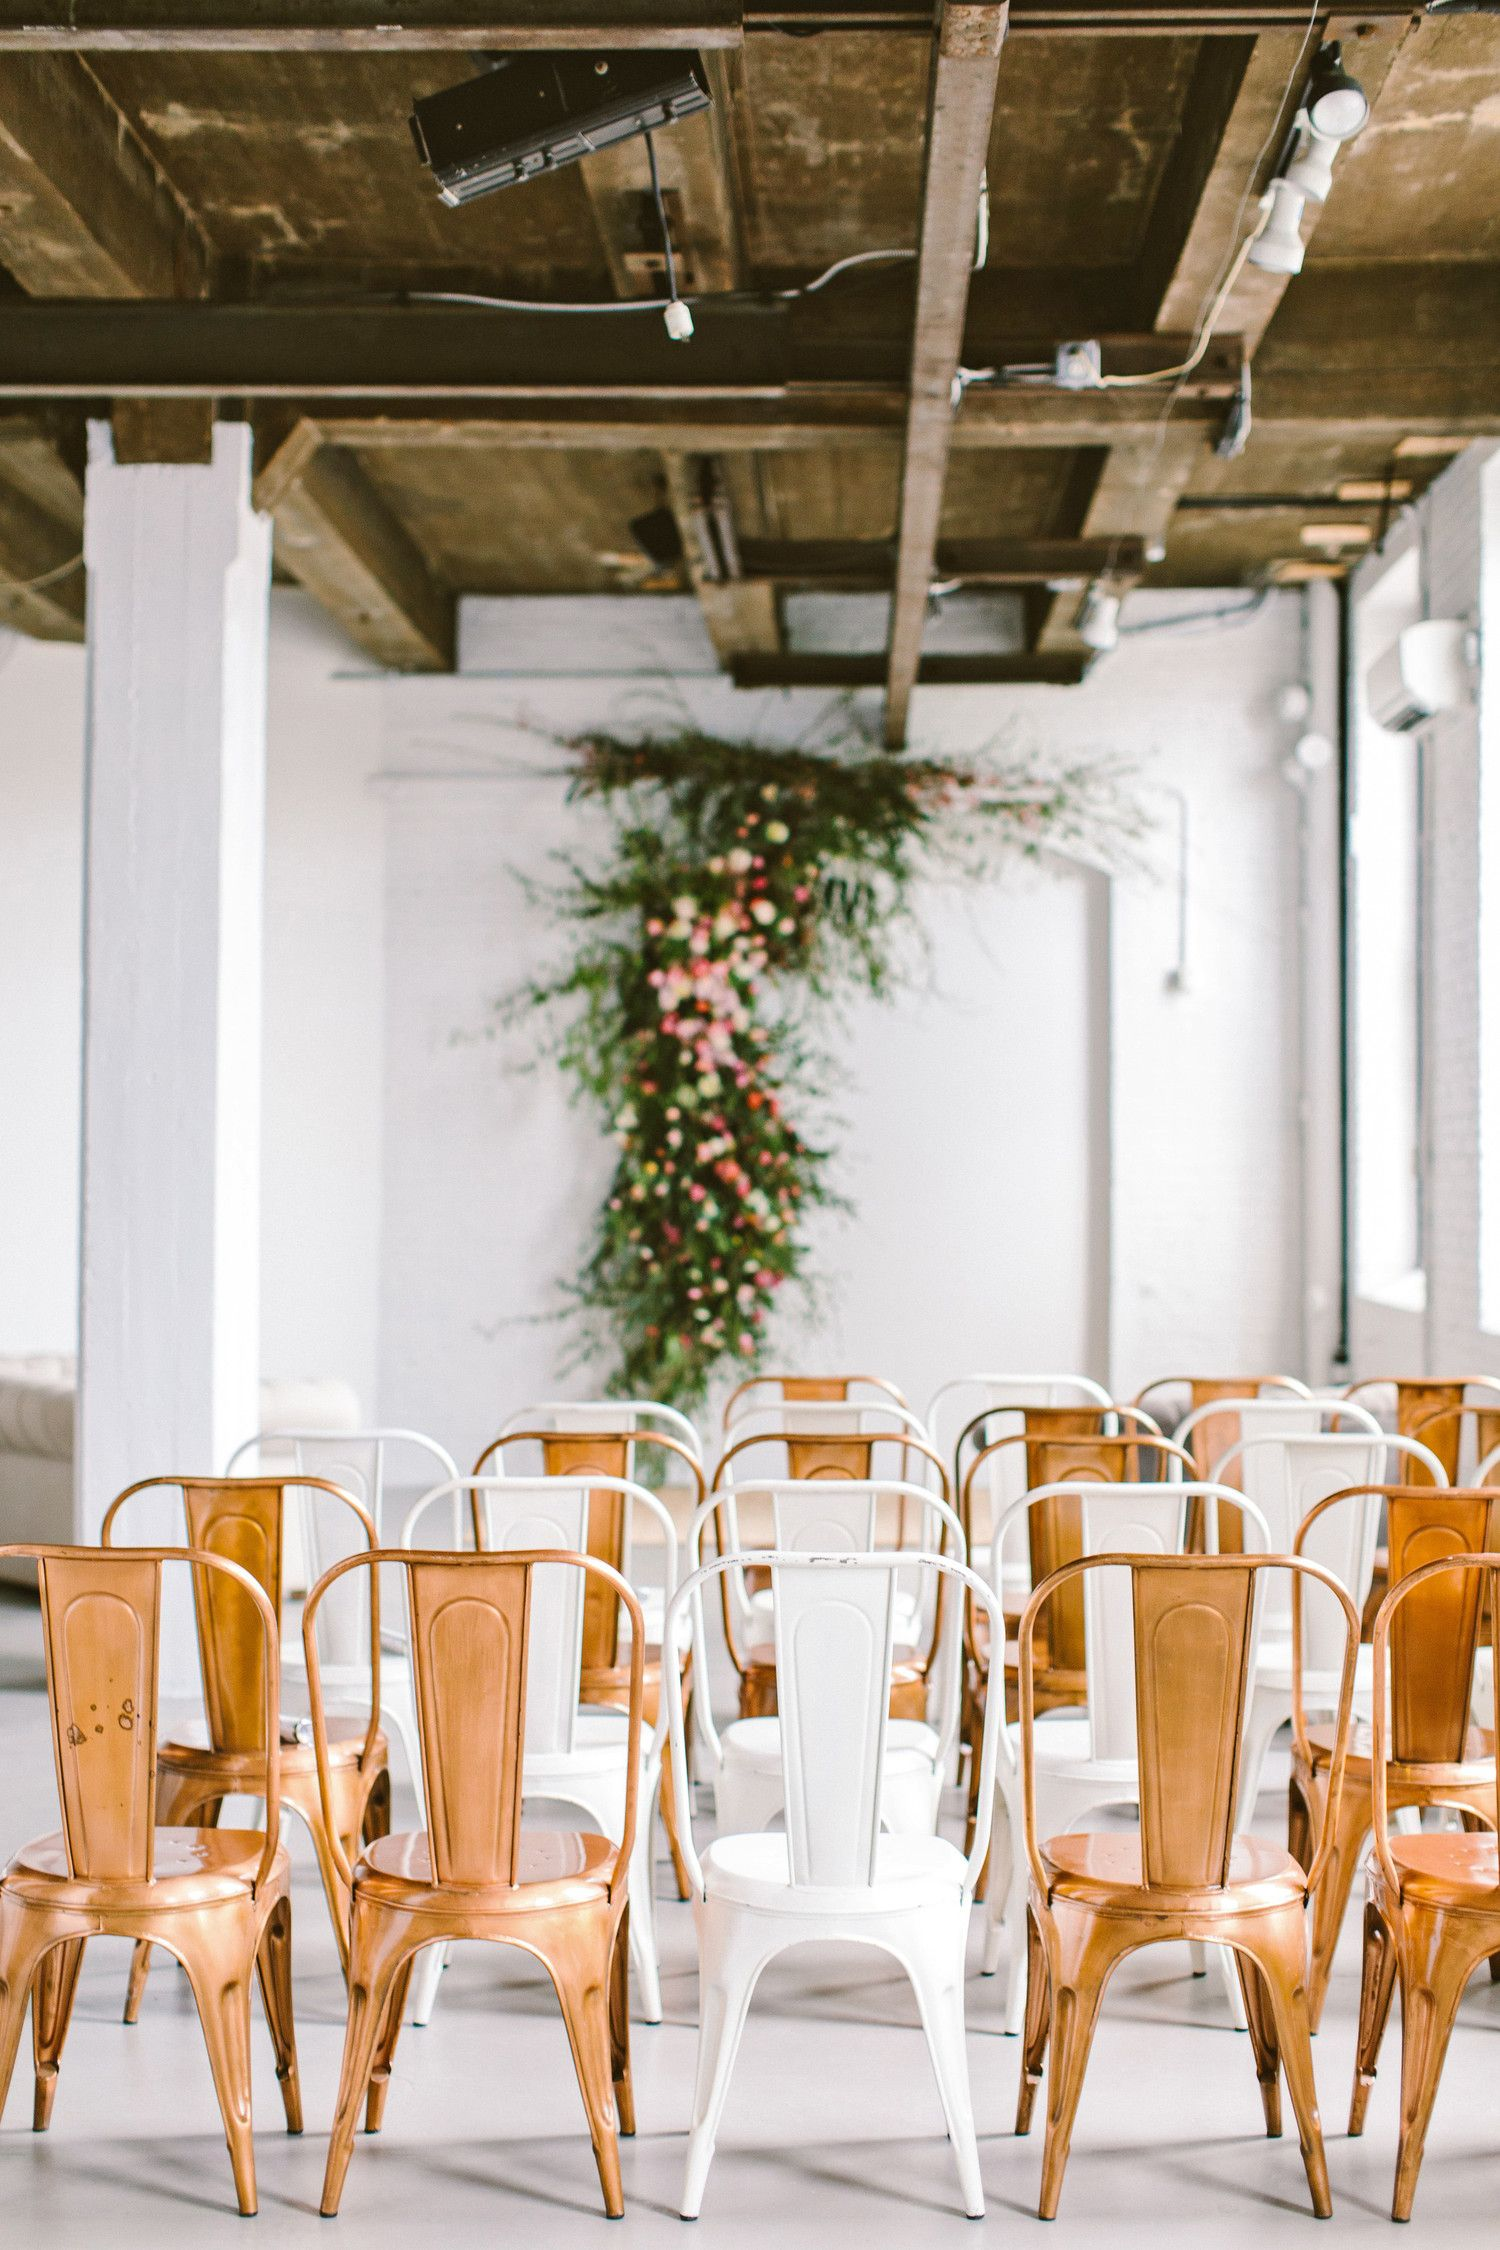 Painted And Copper Plated Metal Chairs From Maggpie Rentals Filled The Ceremony Space At Crane Ar Wedding Rental Chairs Wedding Chairs Wedding Budget Planner